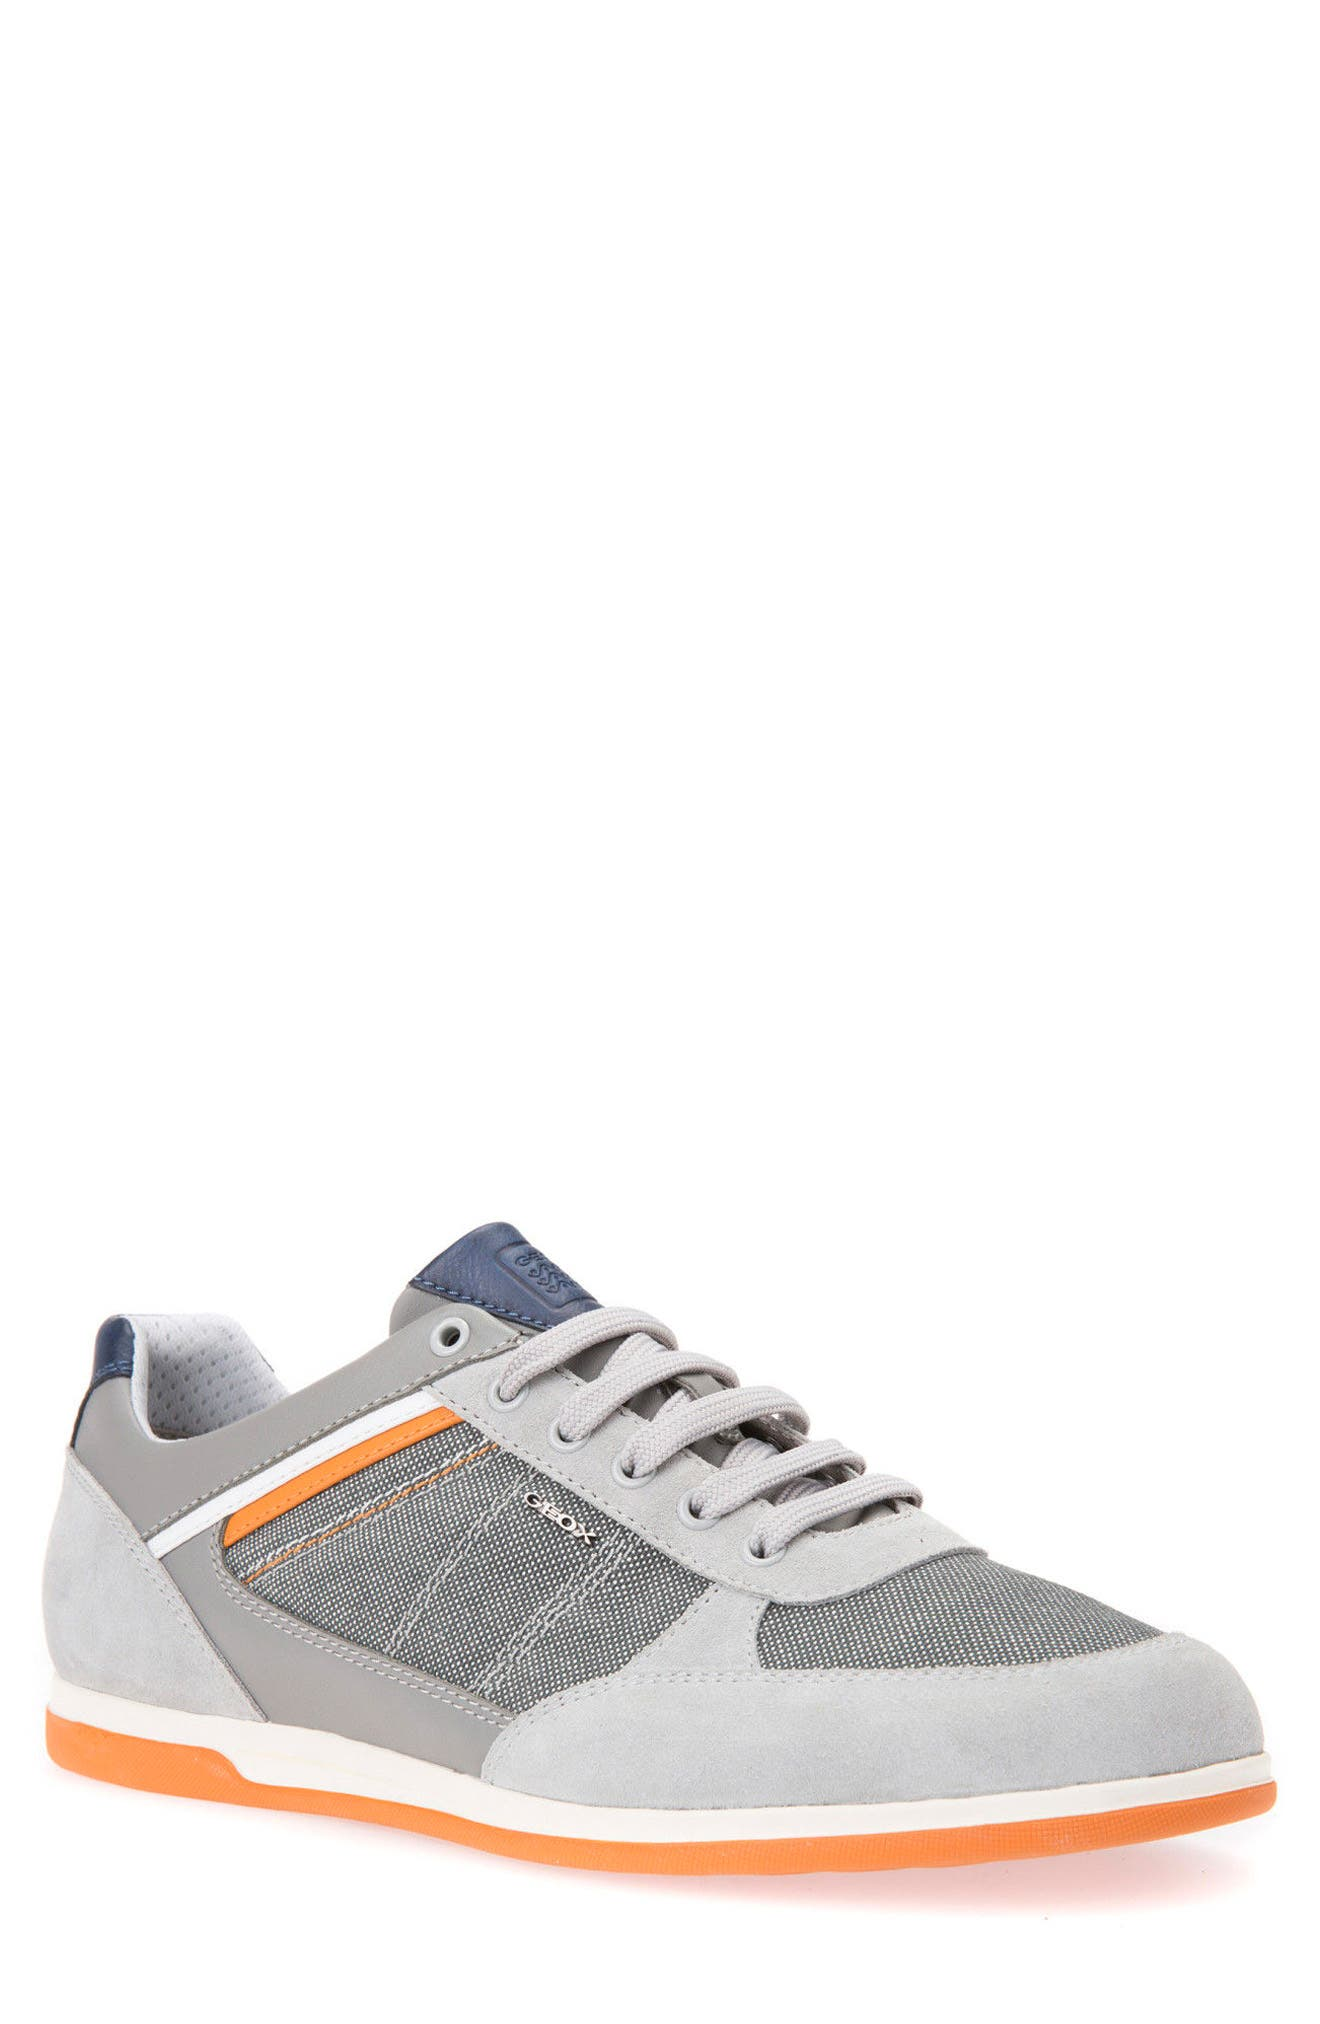 Renan 1 Low Top Sneaker,                             Main thumbnail 1, color,                             Light Grey/ Stone